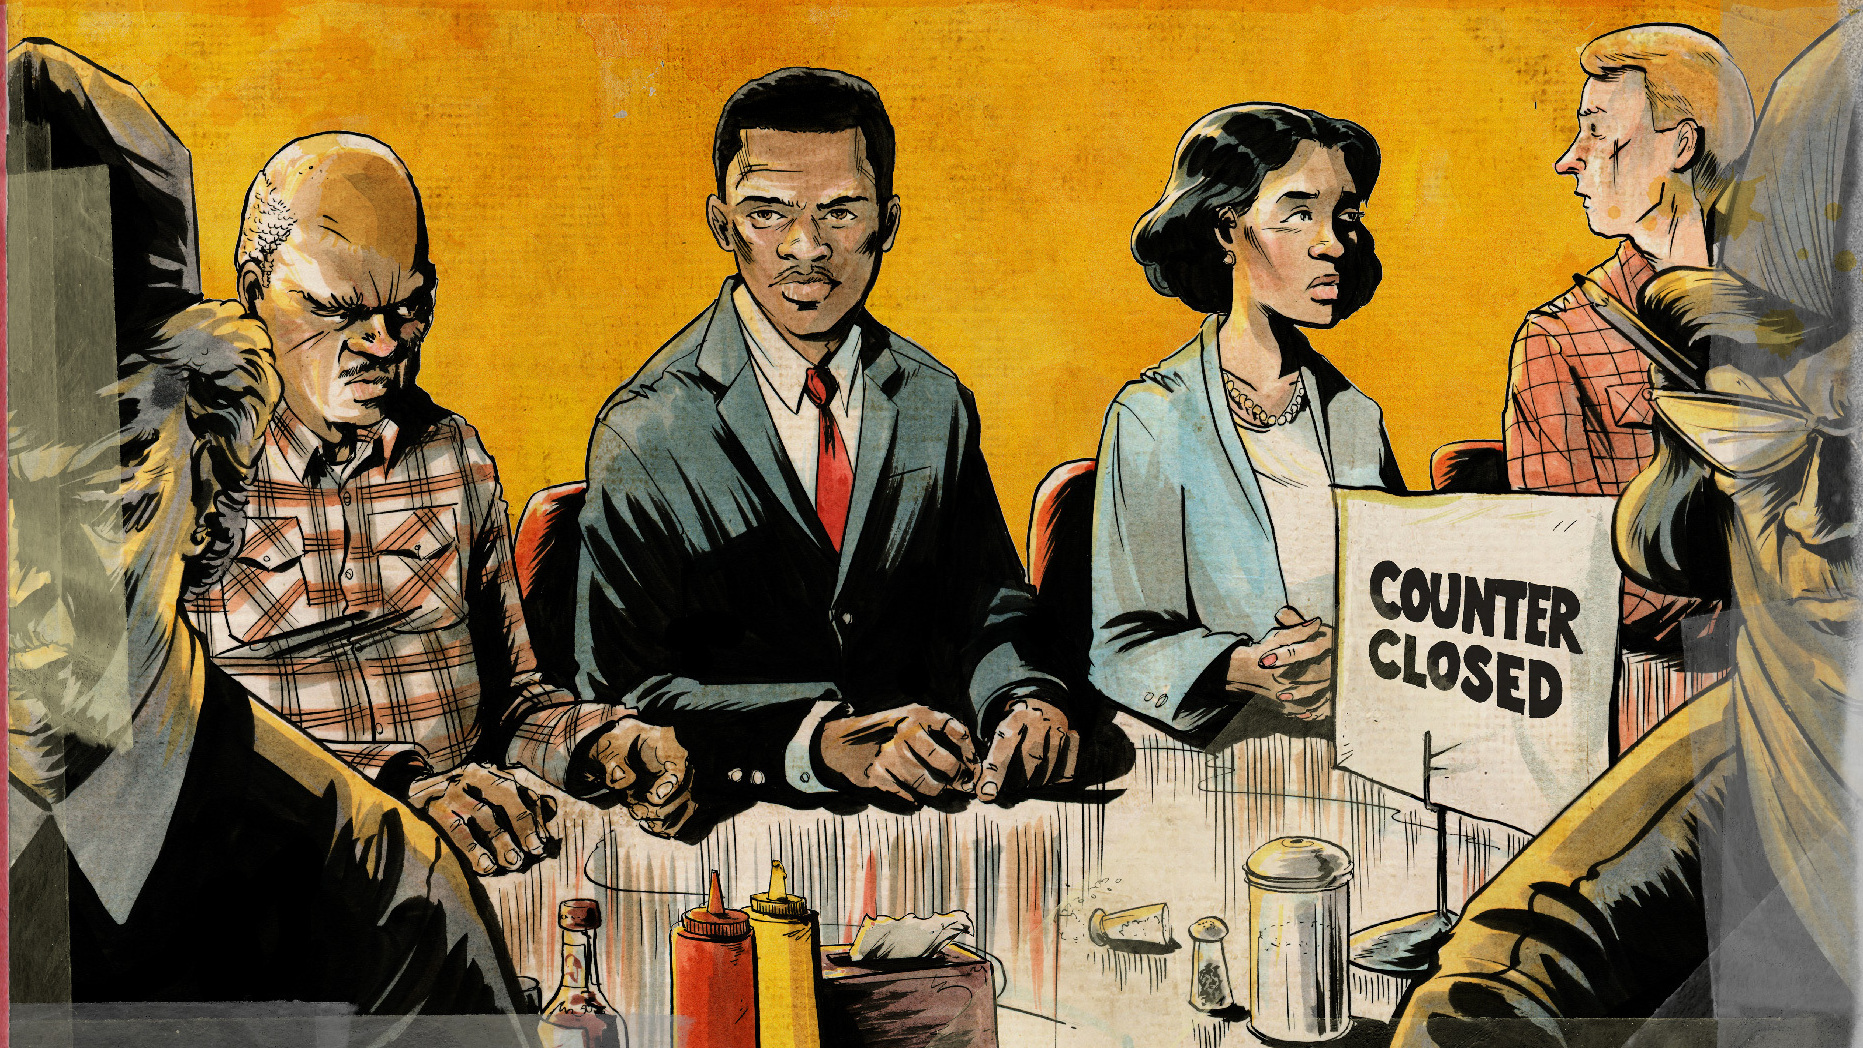 John Lewis' 'March' Toward Justice Depicted In Graphic Novel ...